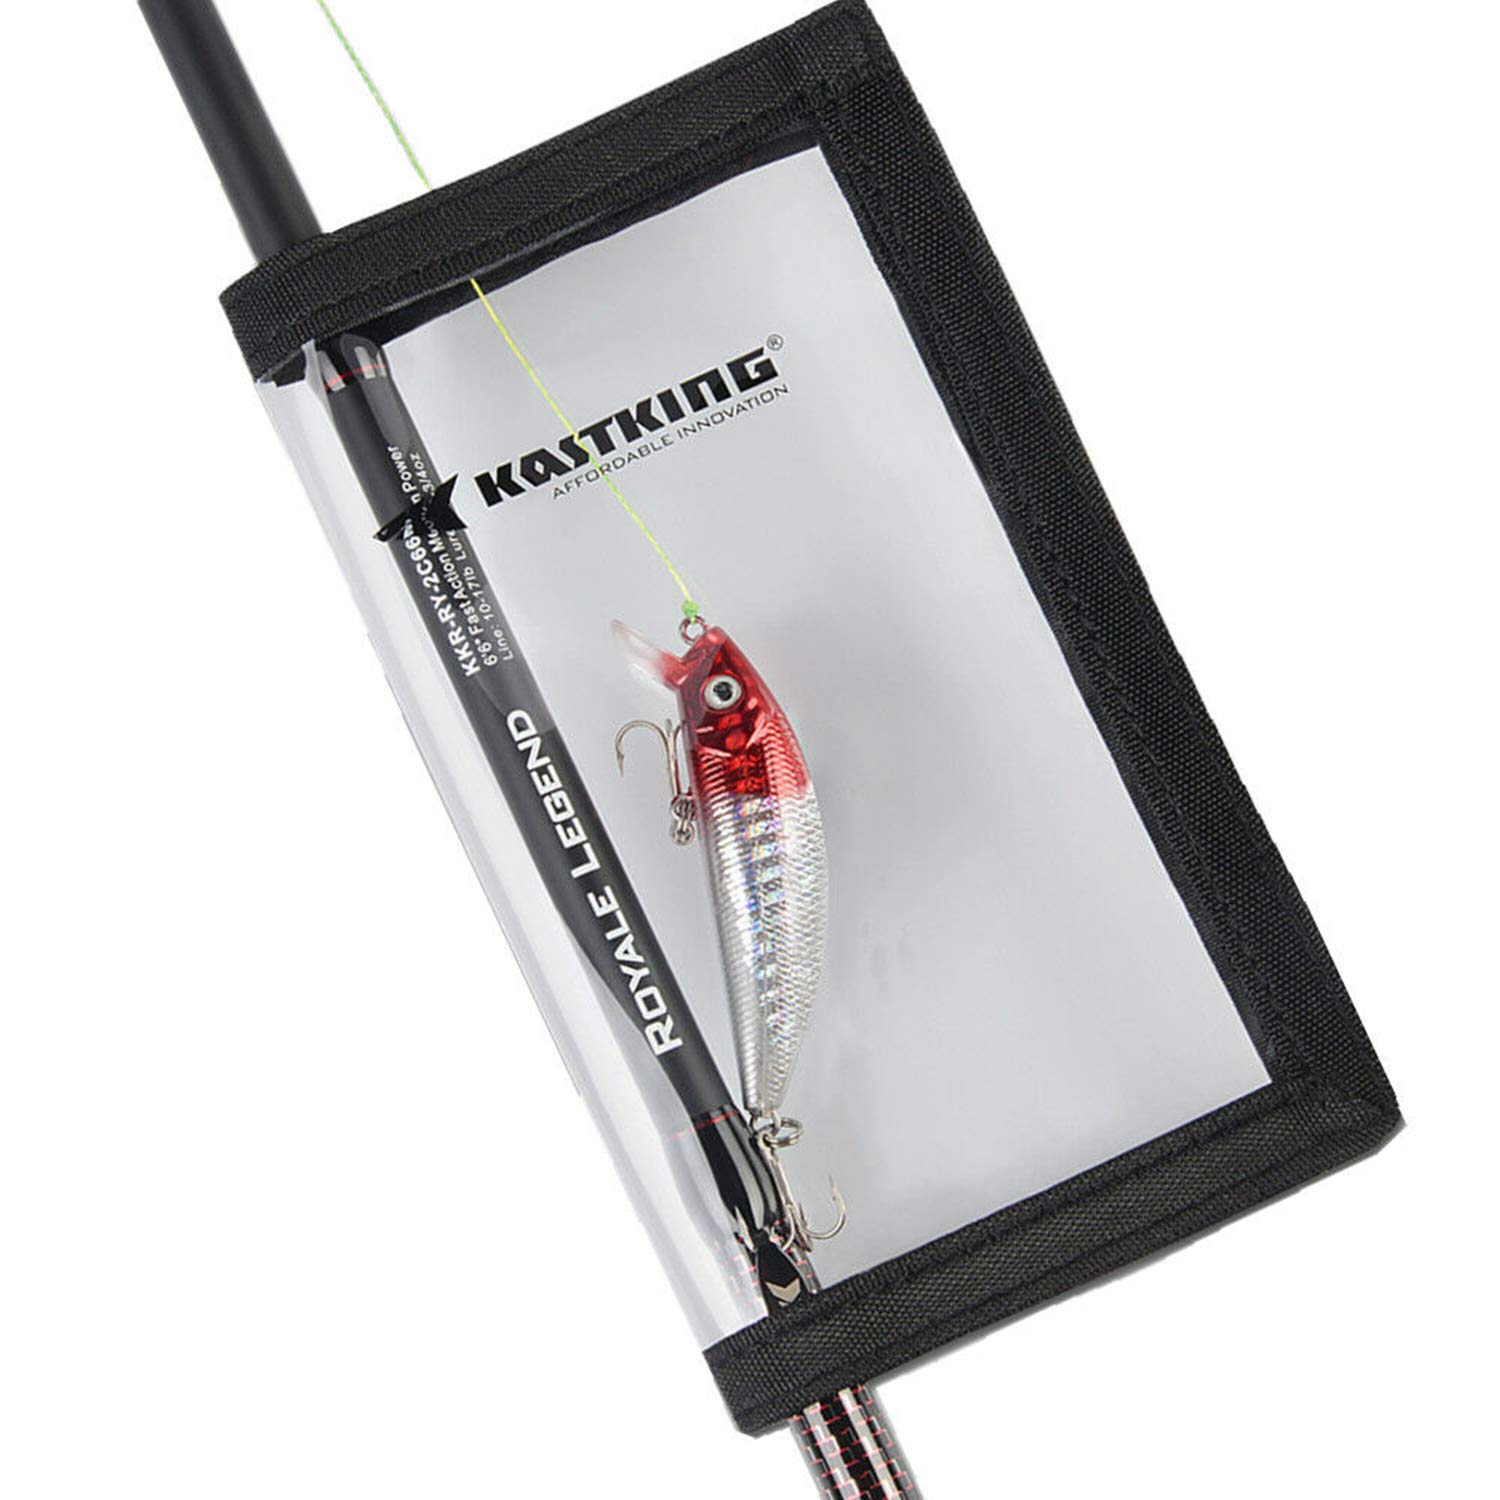 KastKing Fishing Lure Wraps, 4 Packs Lure Cover, Saltwater Resistant Fishing Gear, Fishing Hook Covers, Durable & Clear PVC Keeps Fishing Safe, Easily See Lures, Available in Two Sizes, Great Value